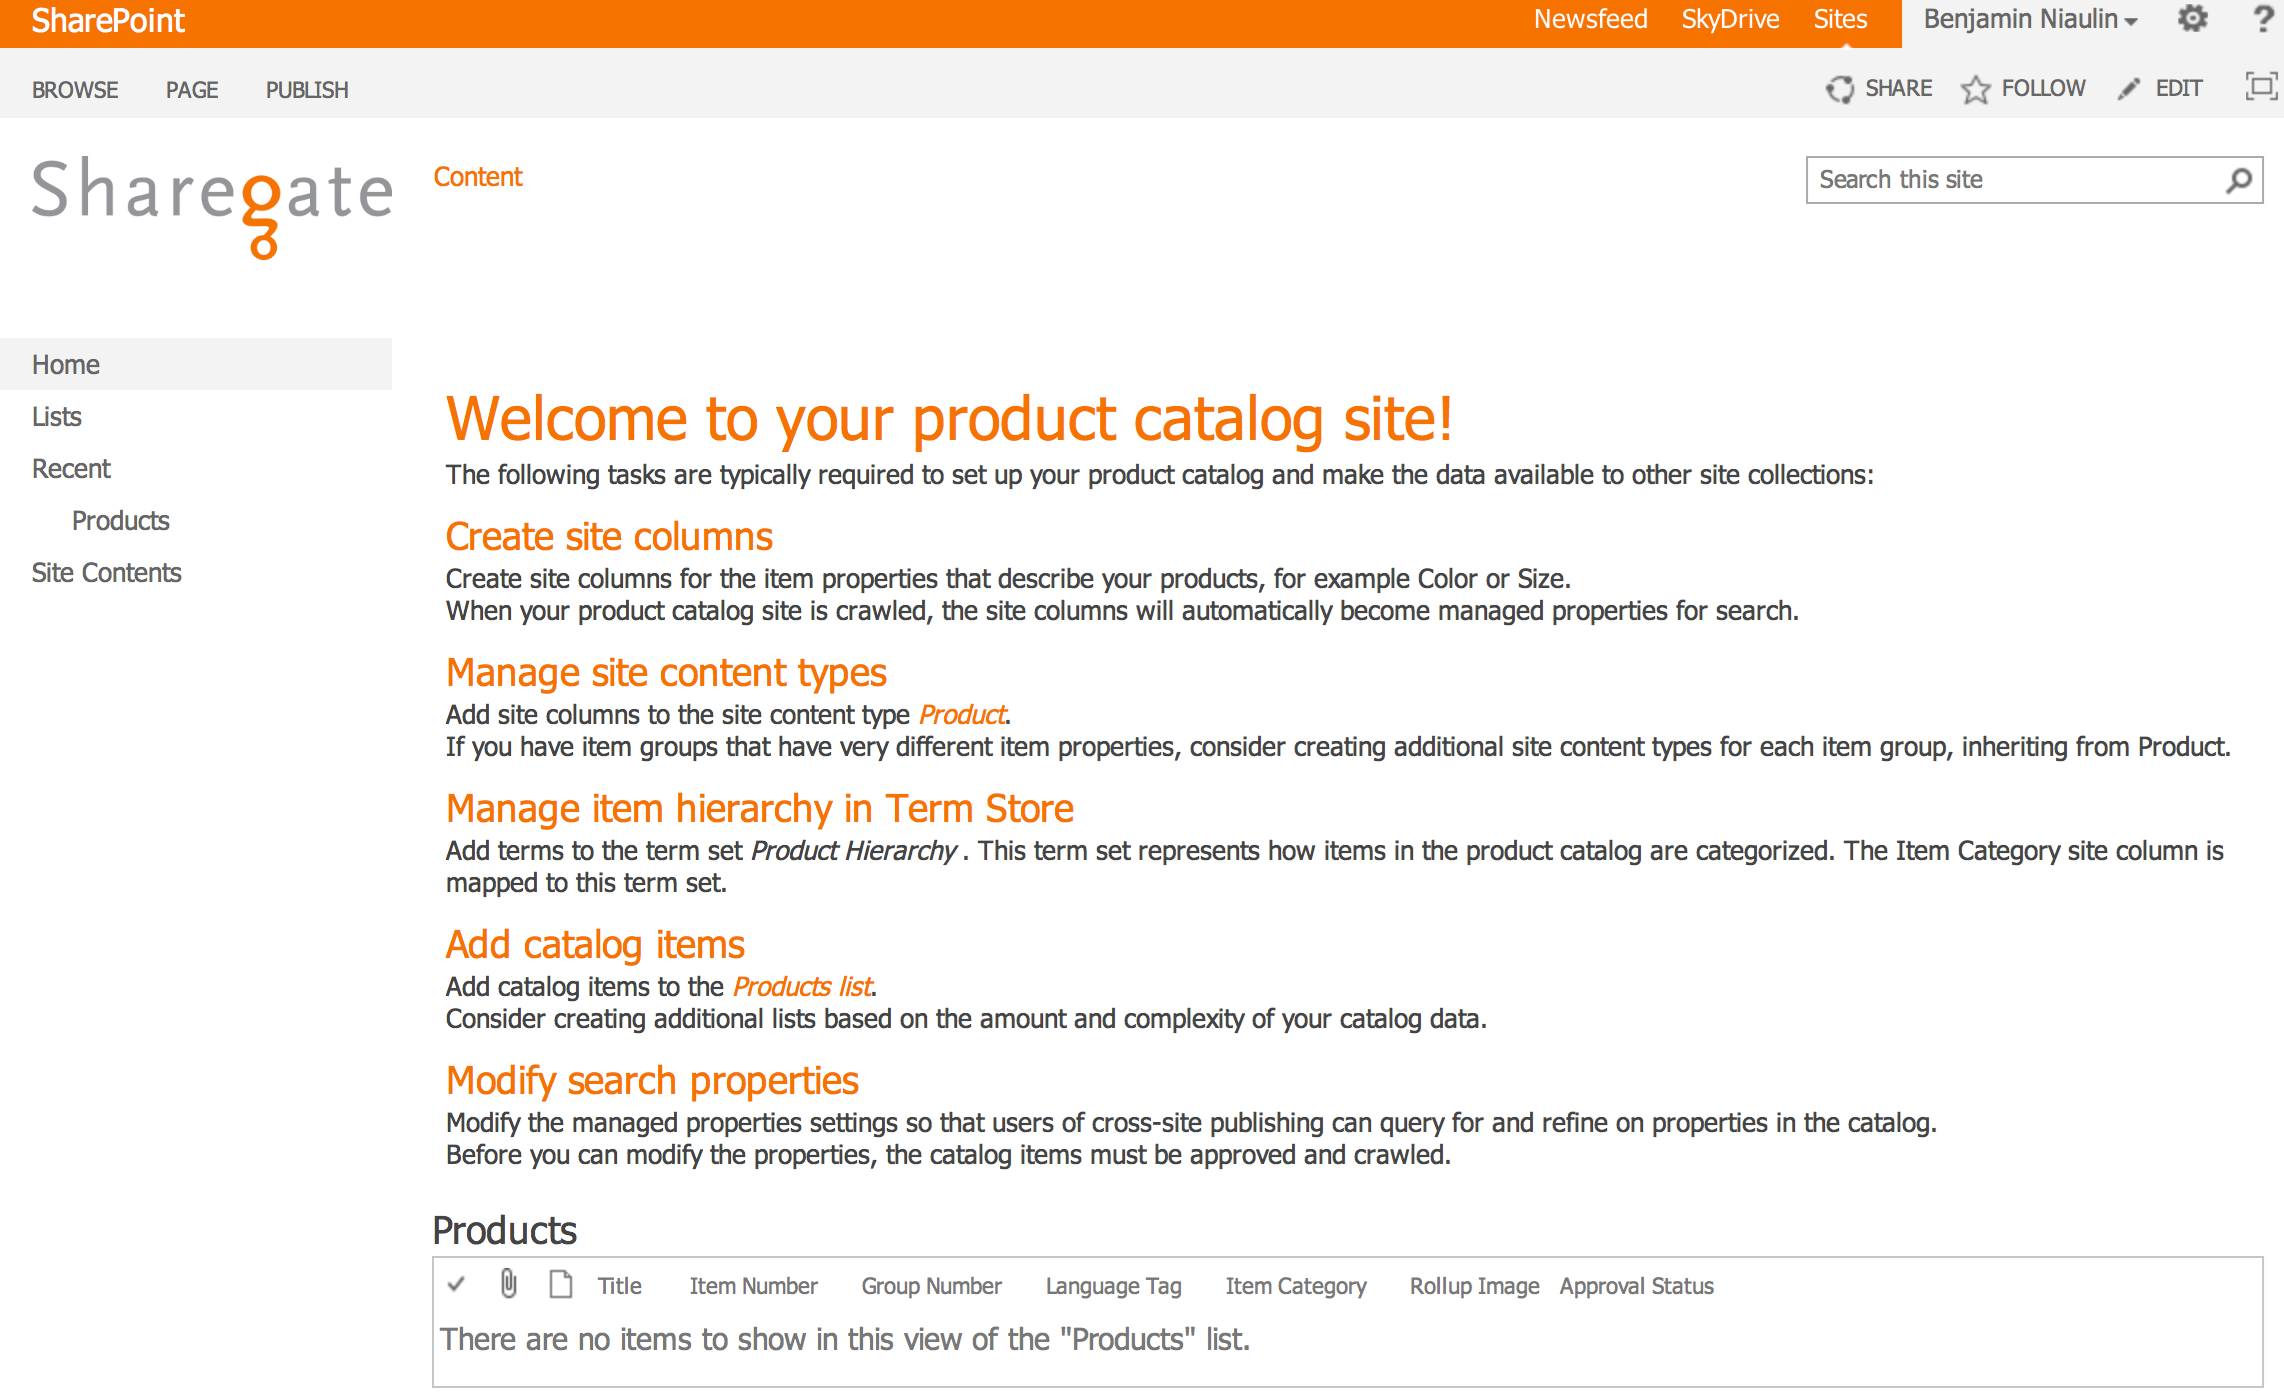 SharePoint 2013 Product Catalog - Sharegate